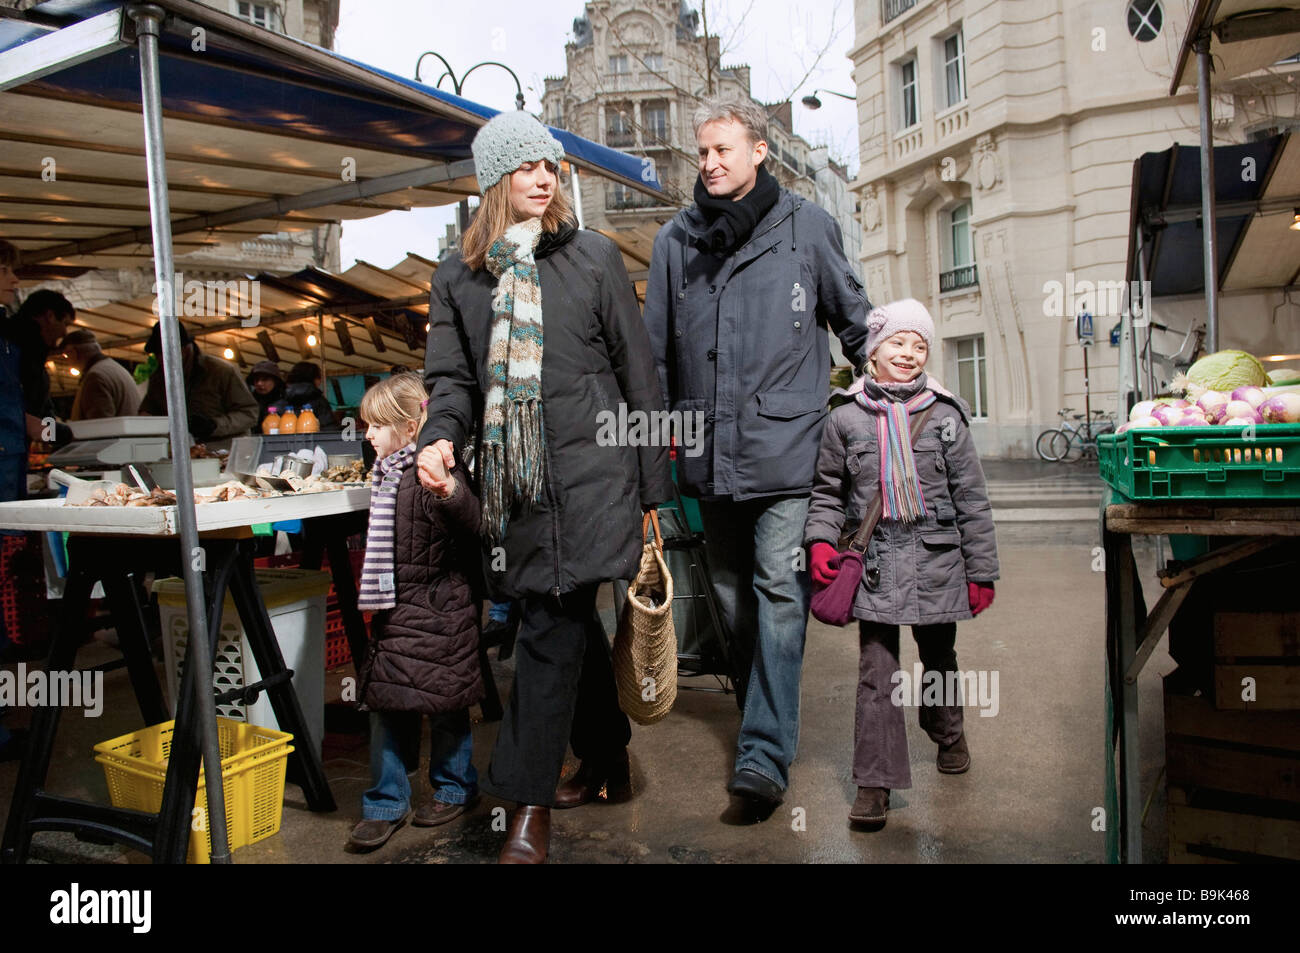 Family walking in outdoor market - Stock Image